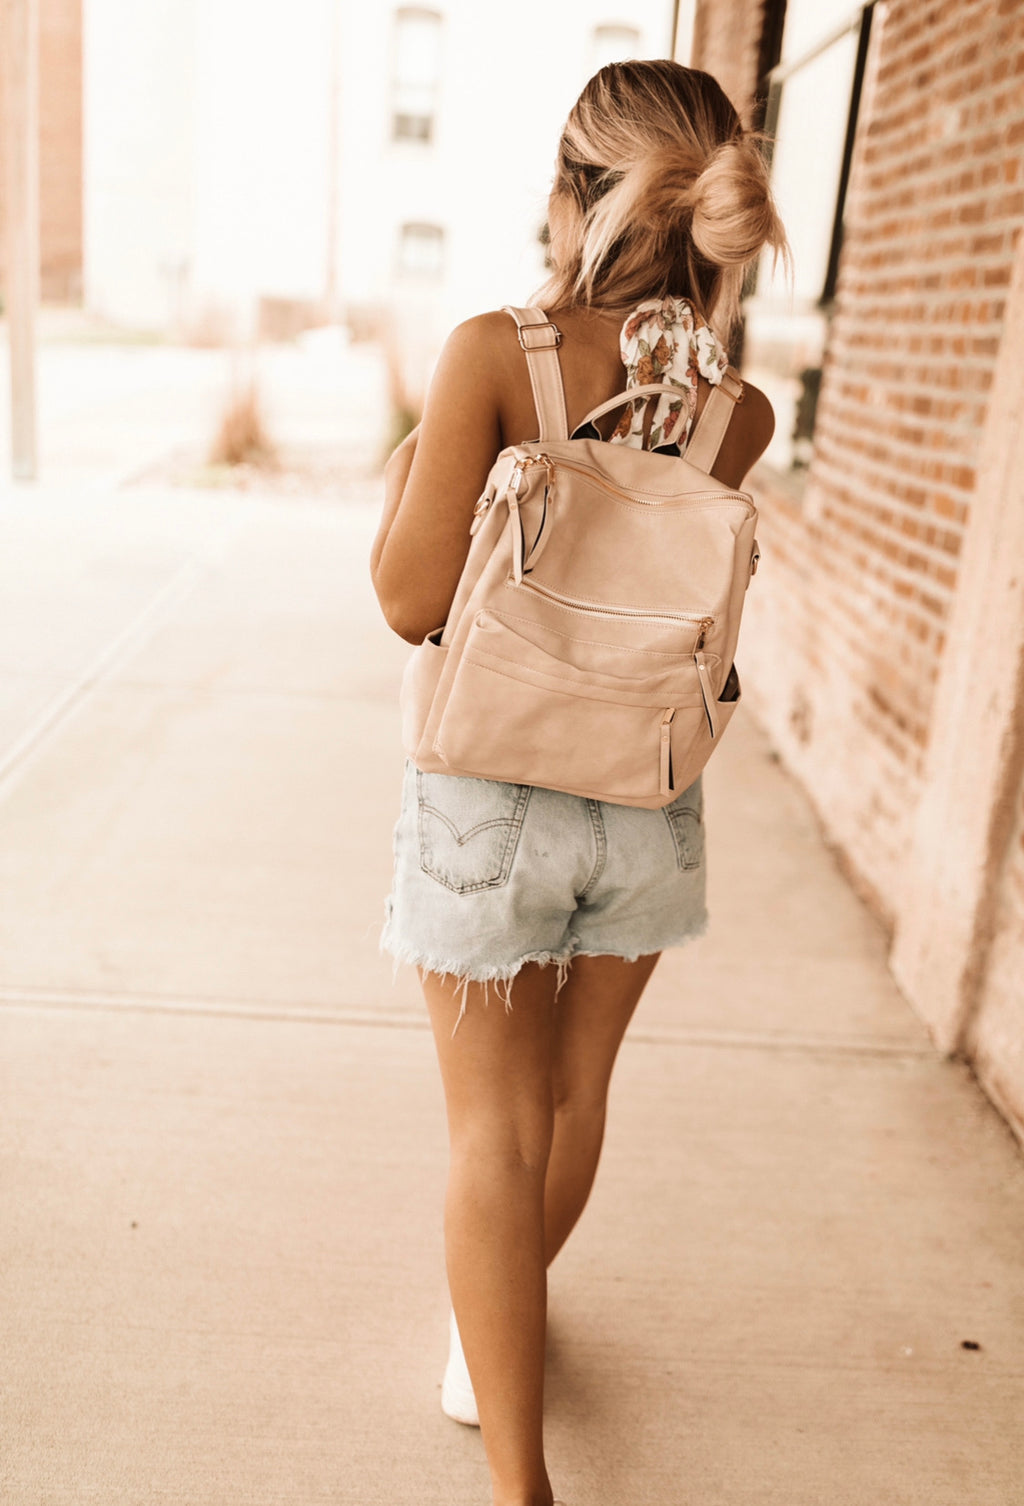 LEATHER BACKPACK - Cream